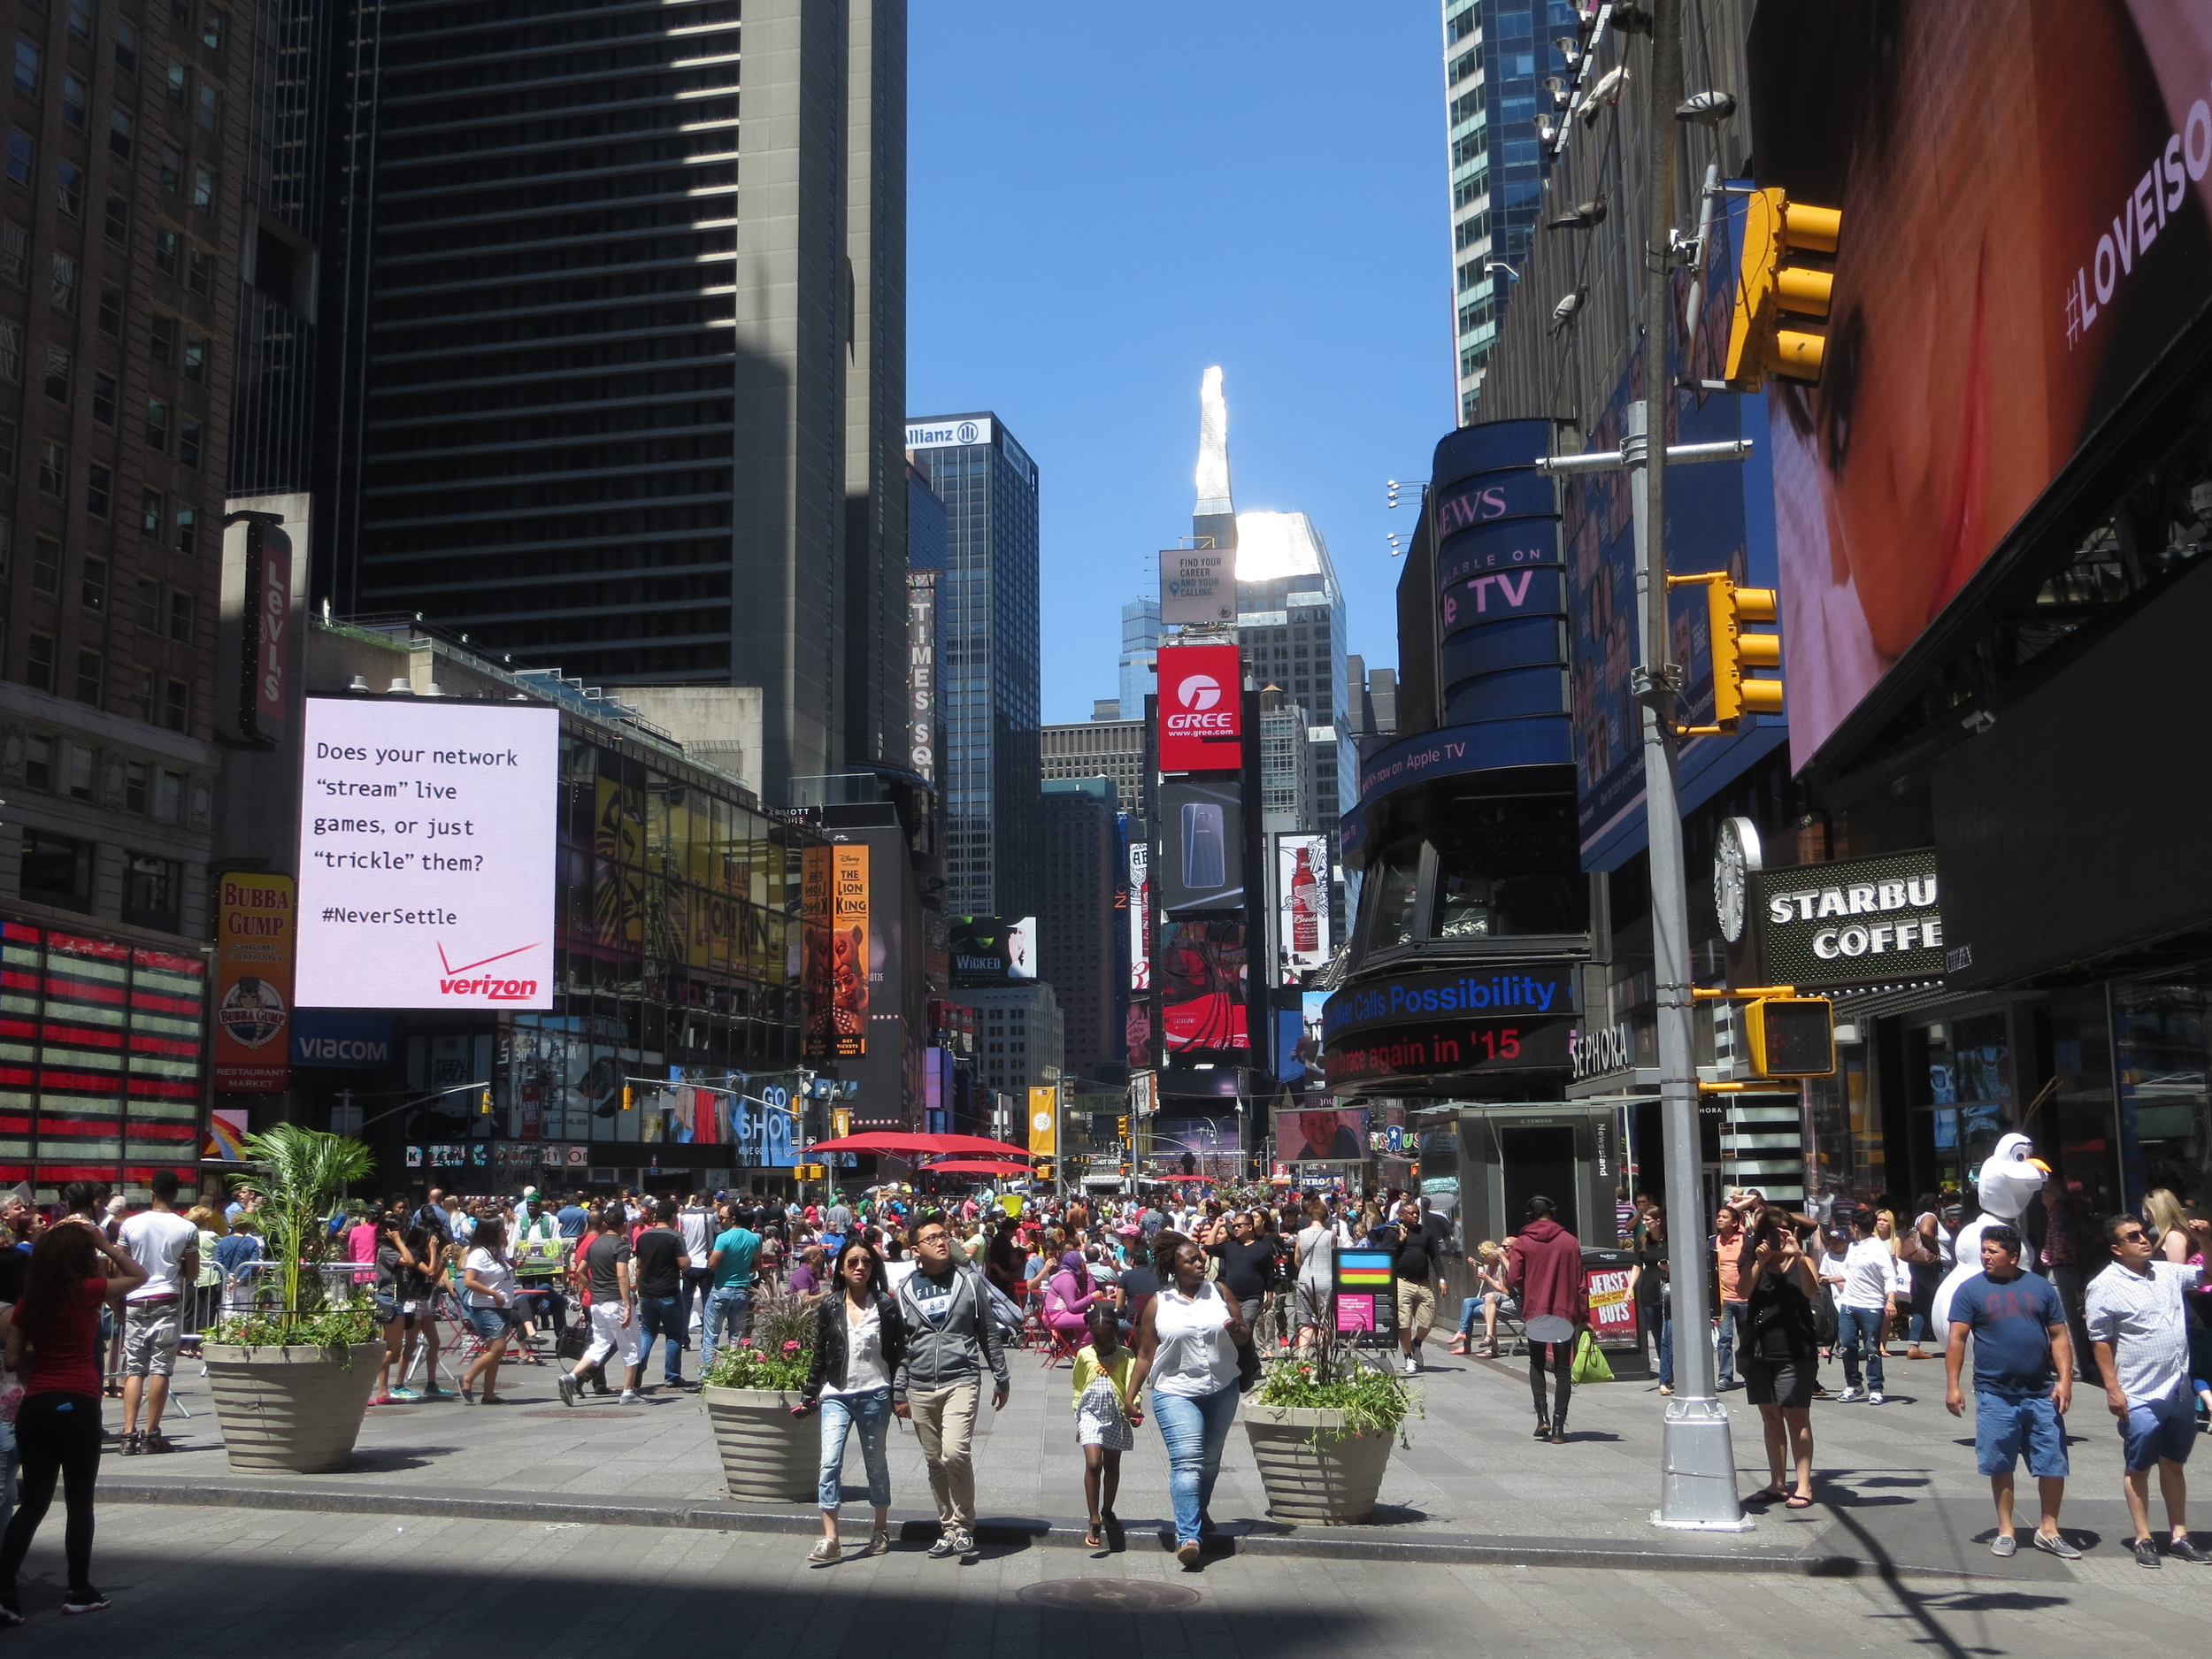 Times Square (Broadway at 42nd St.)